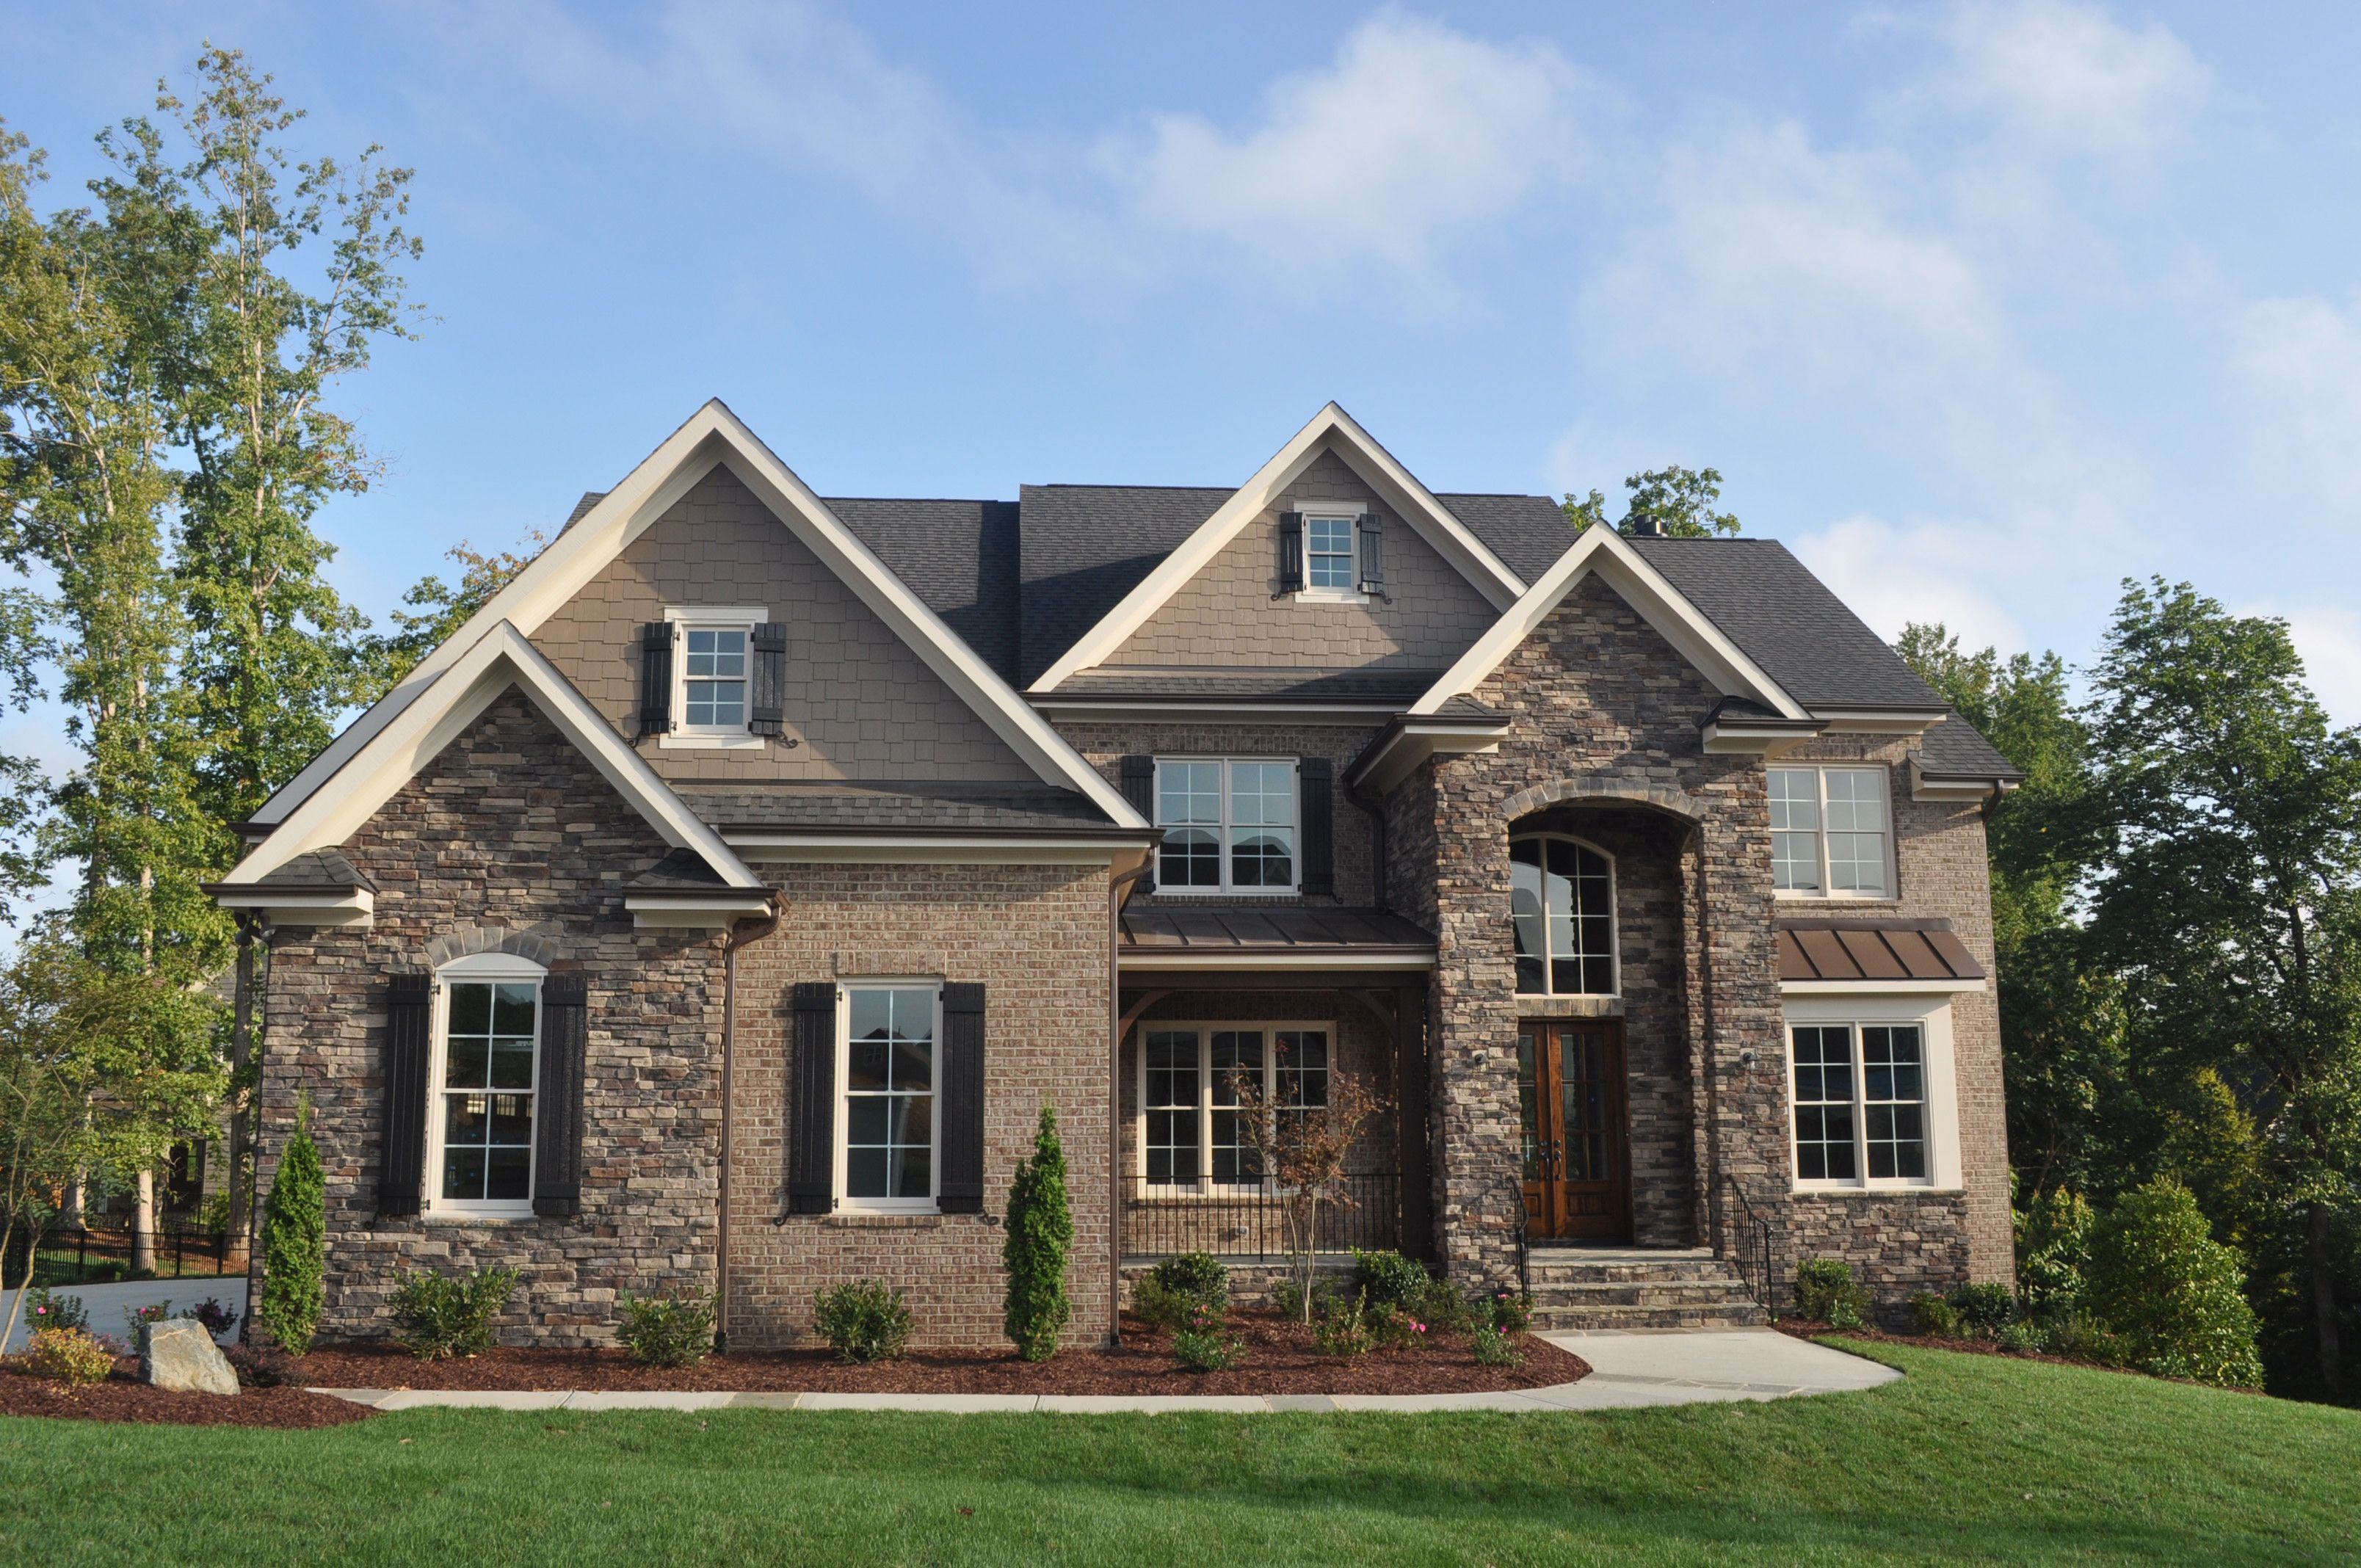 exterior with stone, brick, and siding. use hardiplank instead of